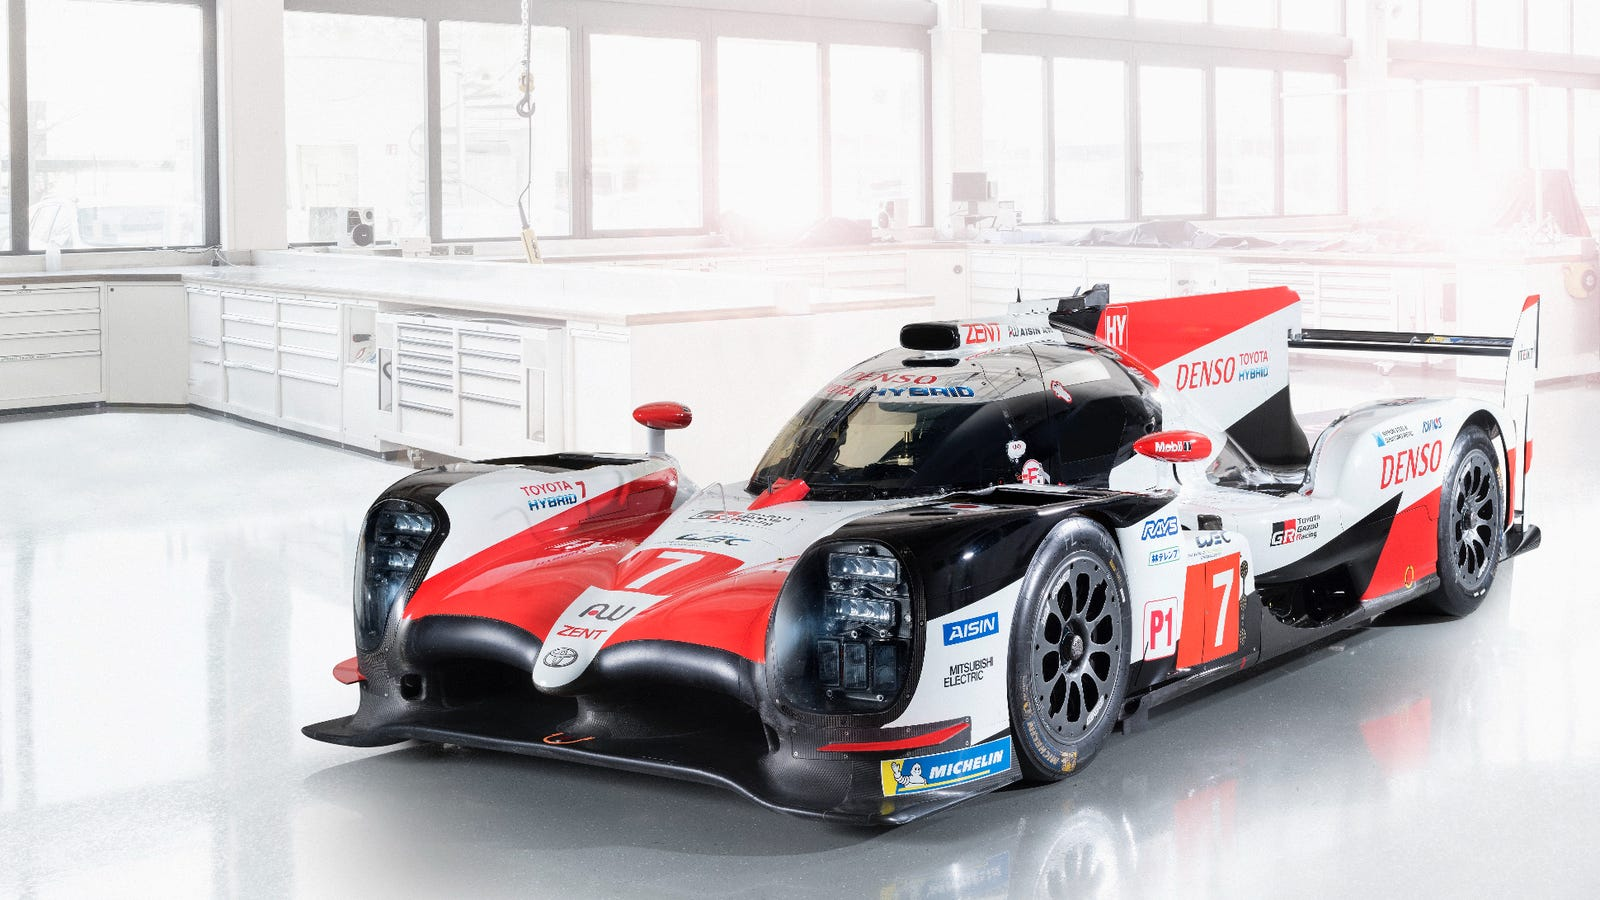 Here S The Updated Ts050 Prototype Toyota Has Two Shots To Win Le Mans With